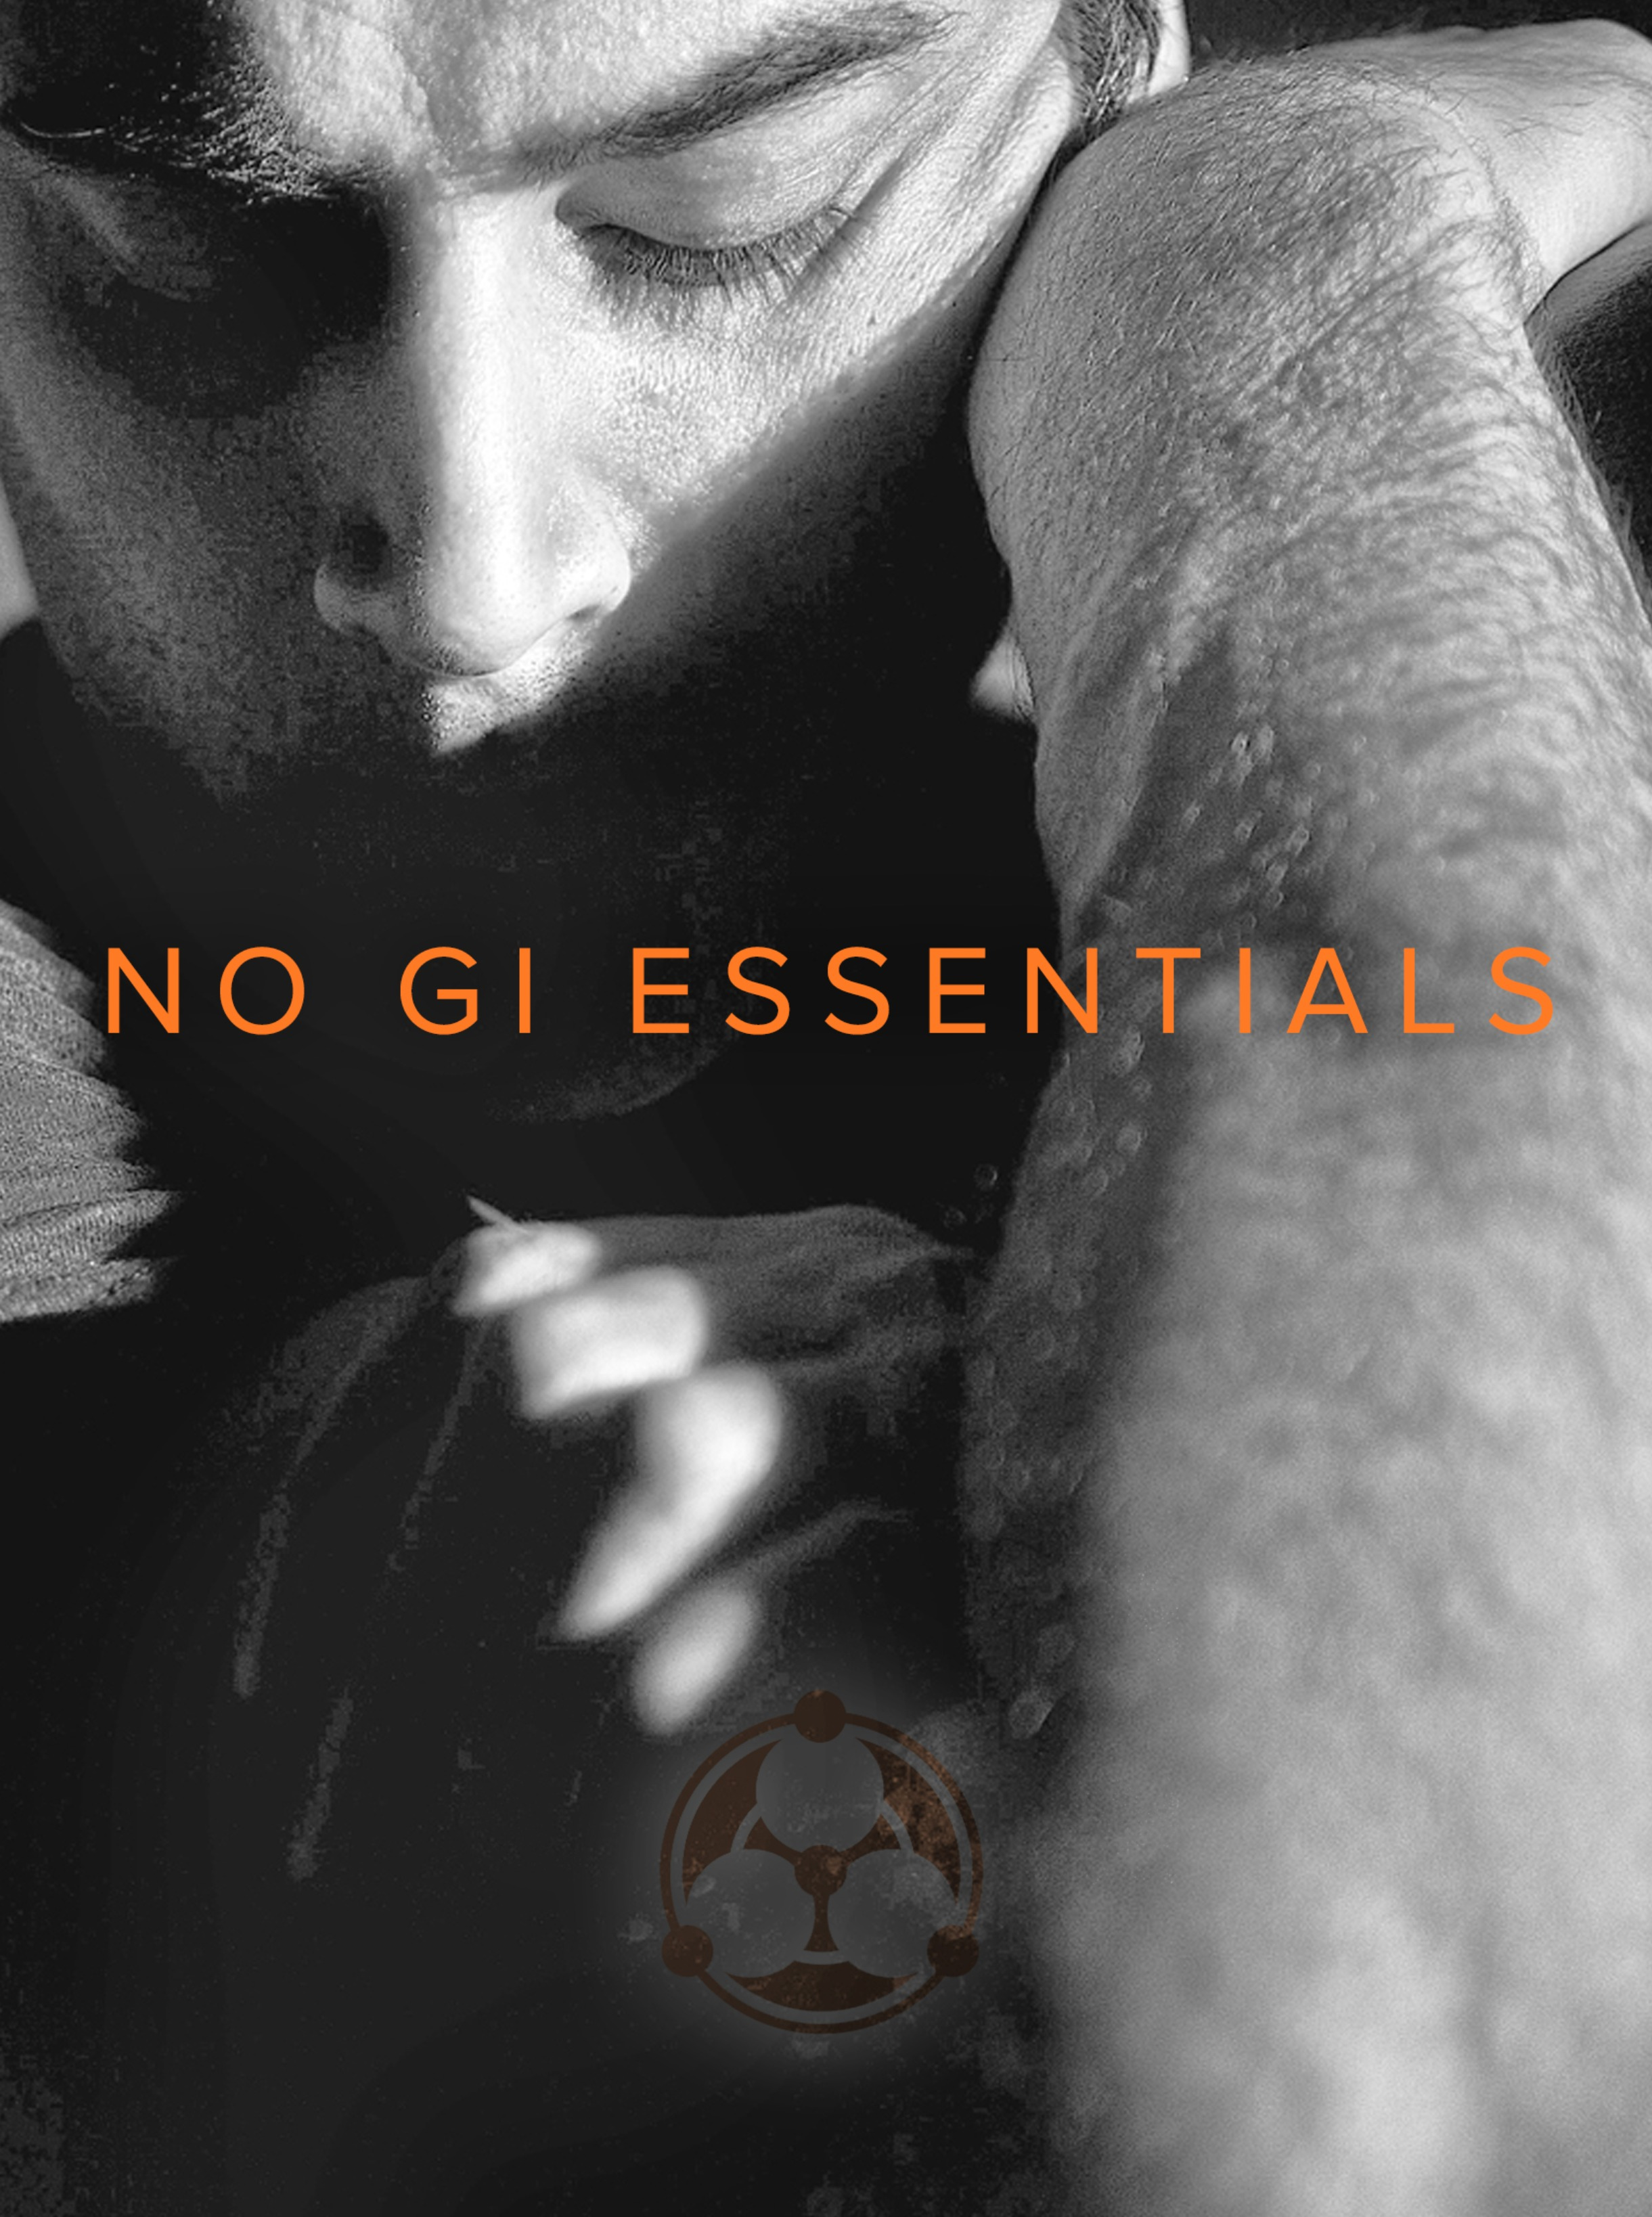 No Gi Essentials (Original 2 DVD Set)